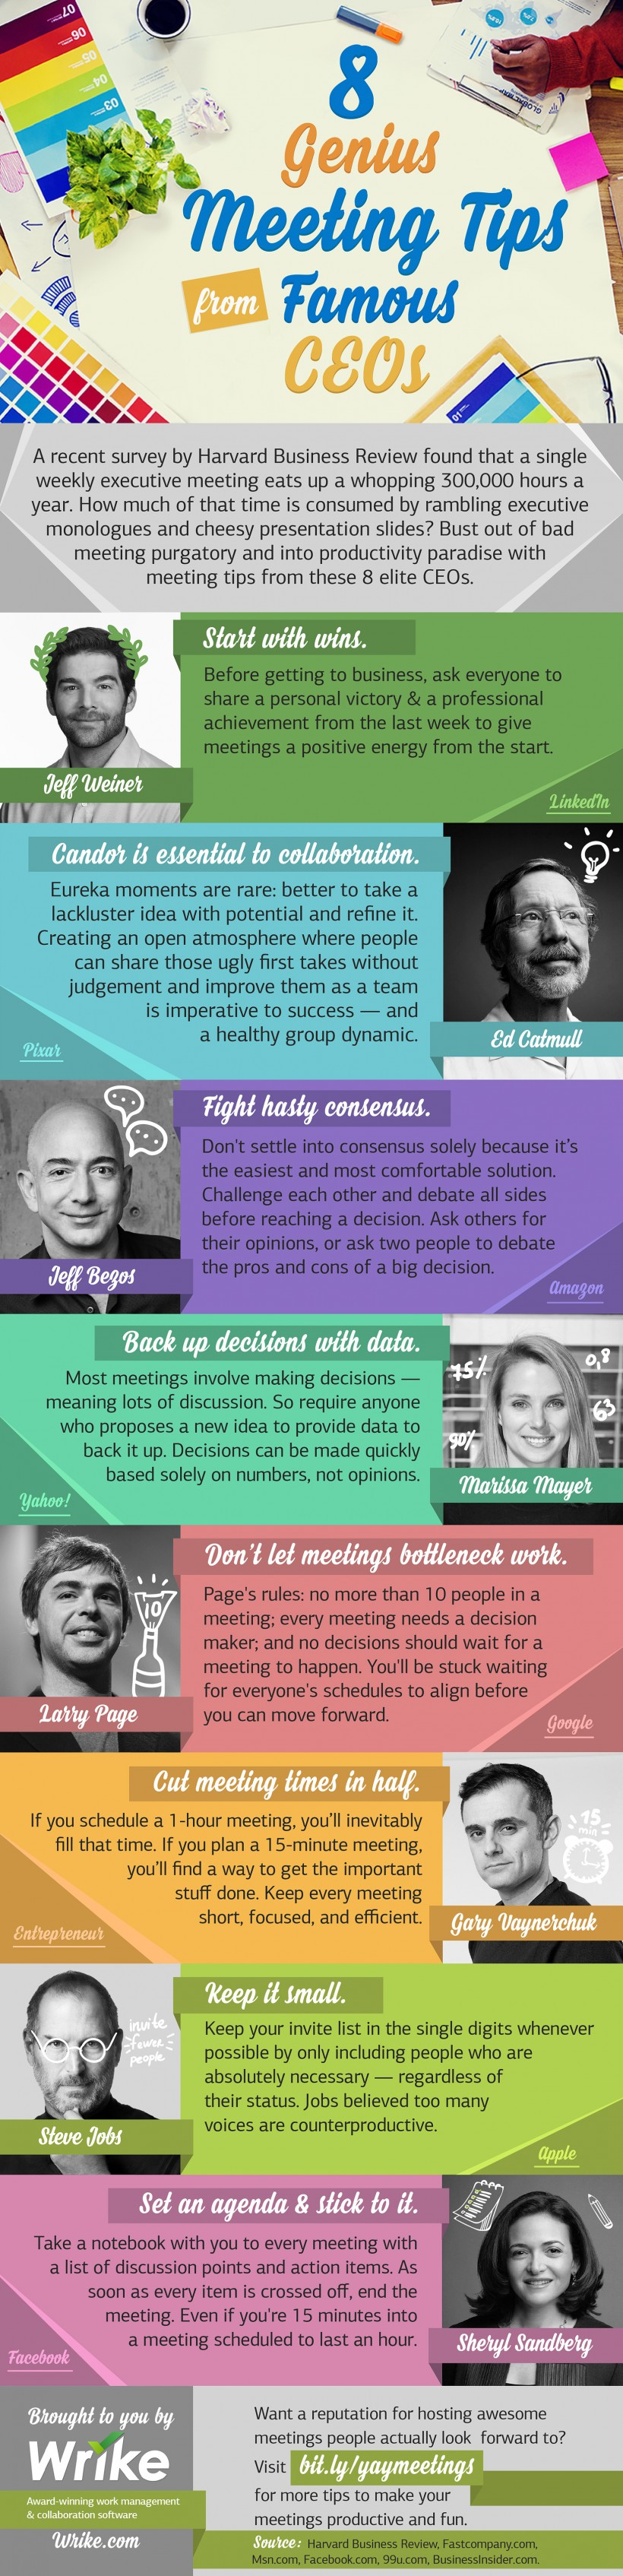 8 Genius Meeting Tips from Famous CEOs